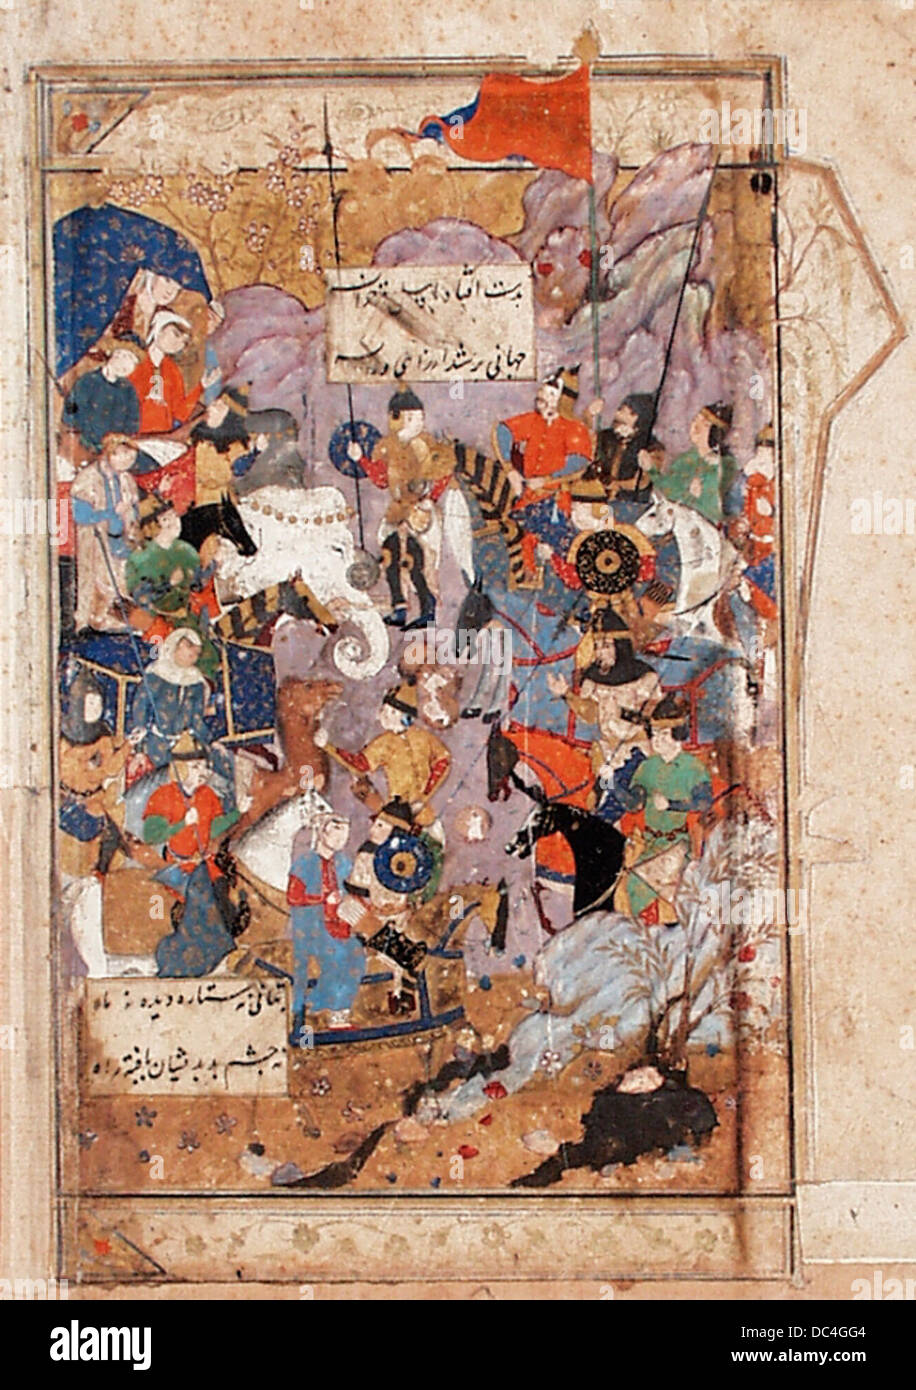 A Major Personage Arriving on a White Elephant- Page from a Manuscript of the Haft Awrang of Jami M.73.5.11 - Stock Image